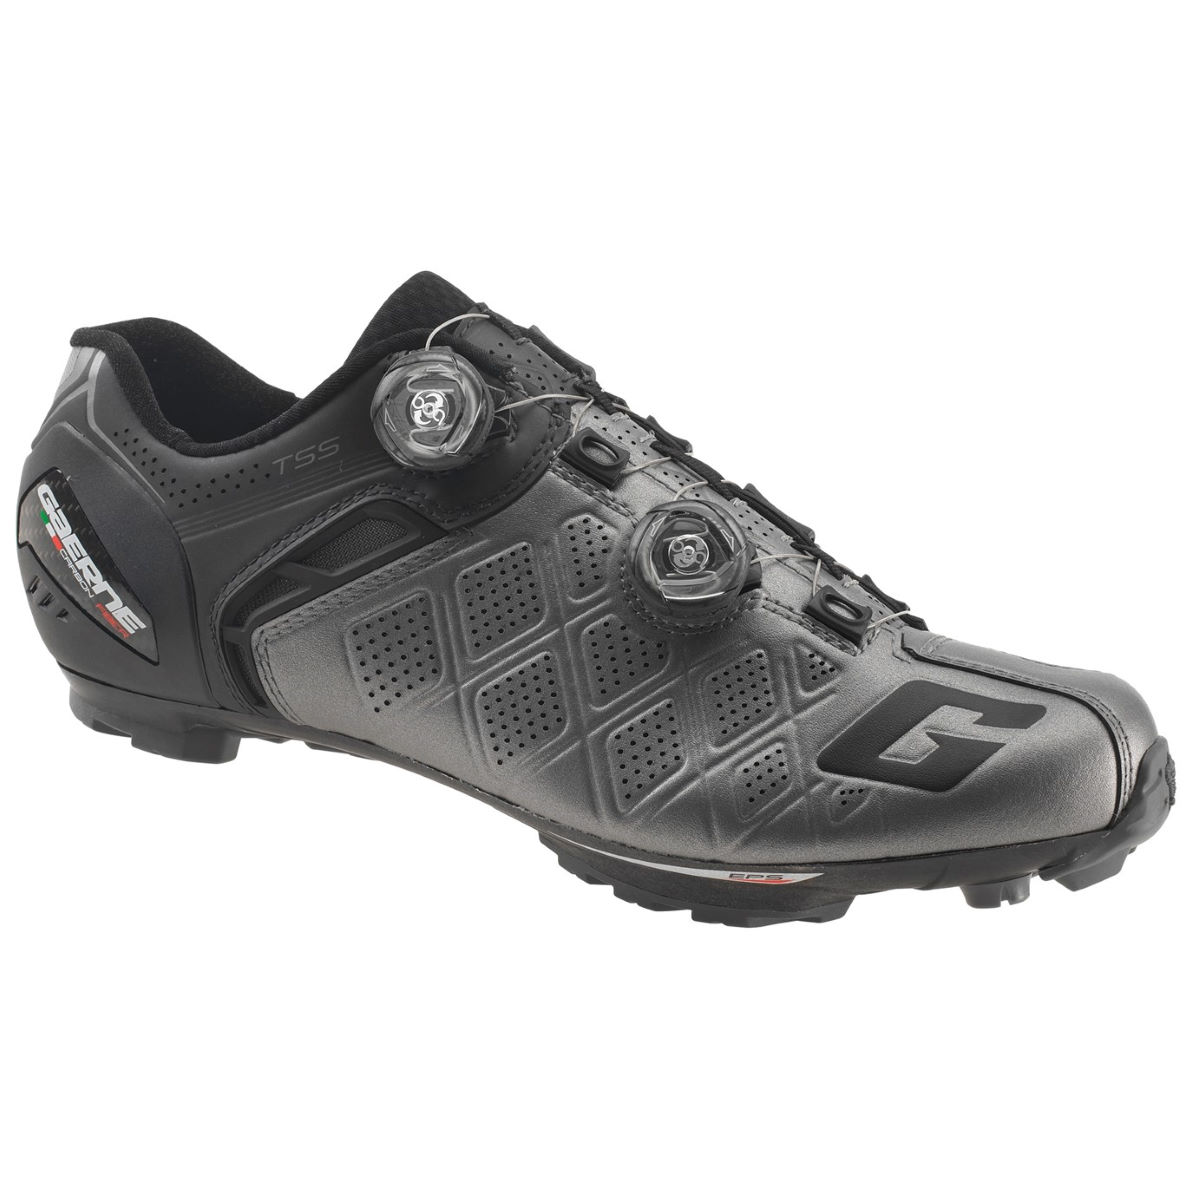 Chaussures VTT Gaerne Carbon Sincro+ SPD - EU 43 Anthrac